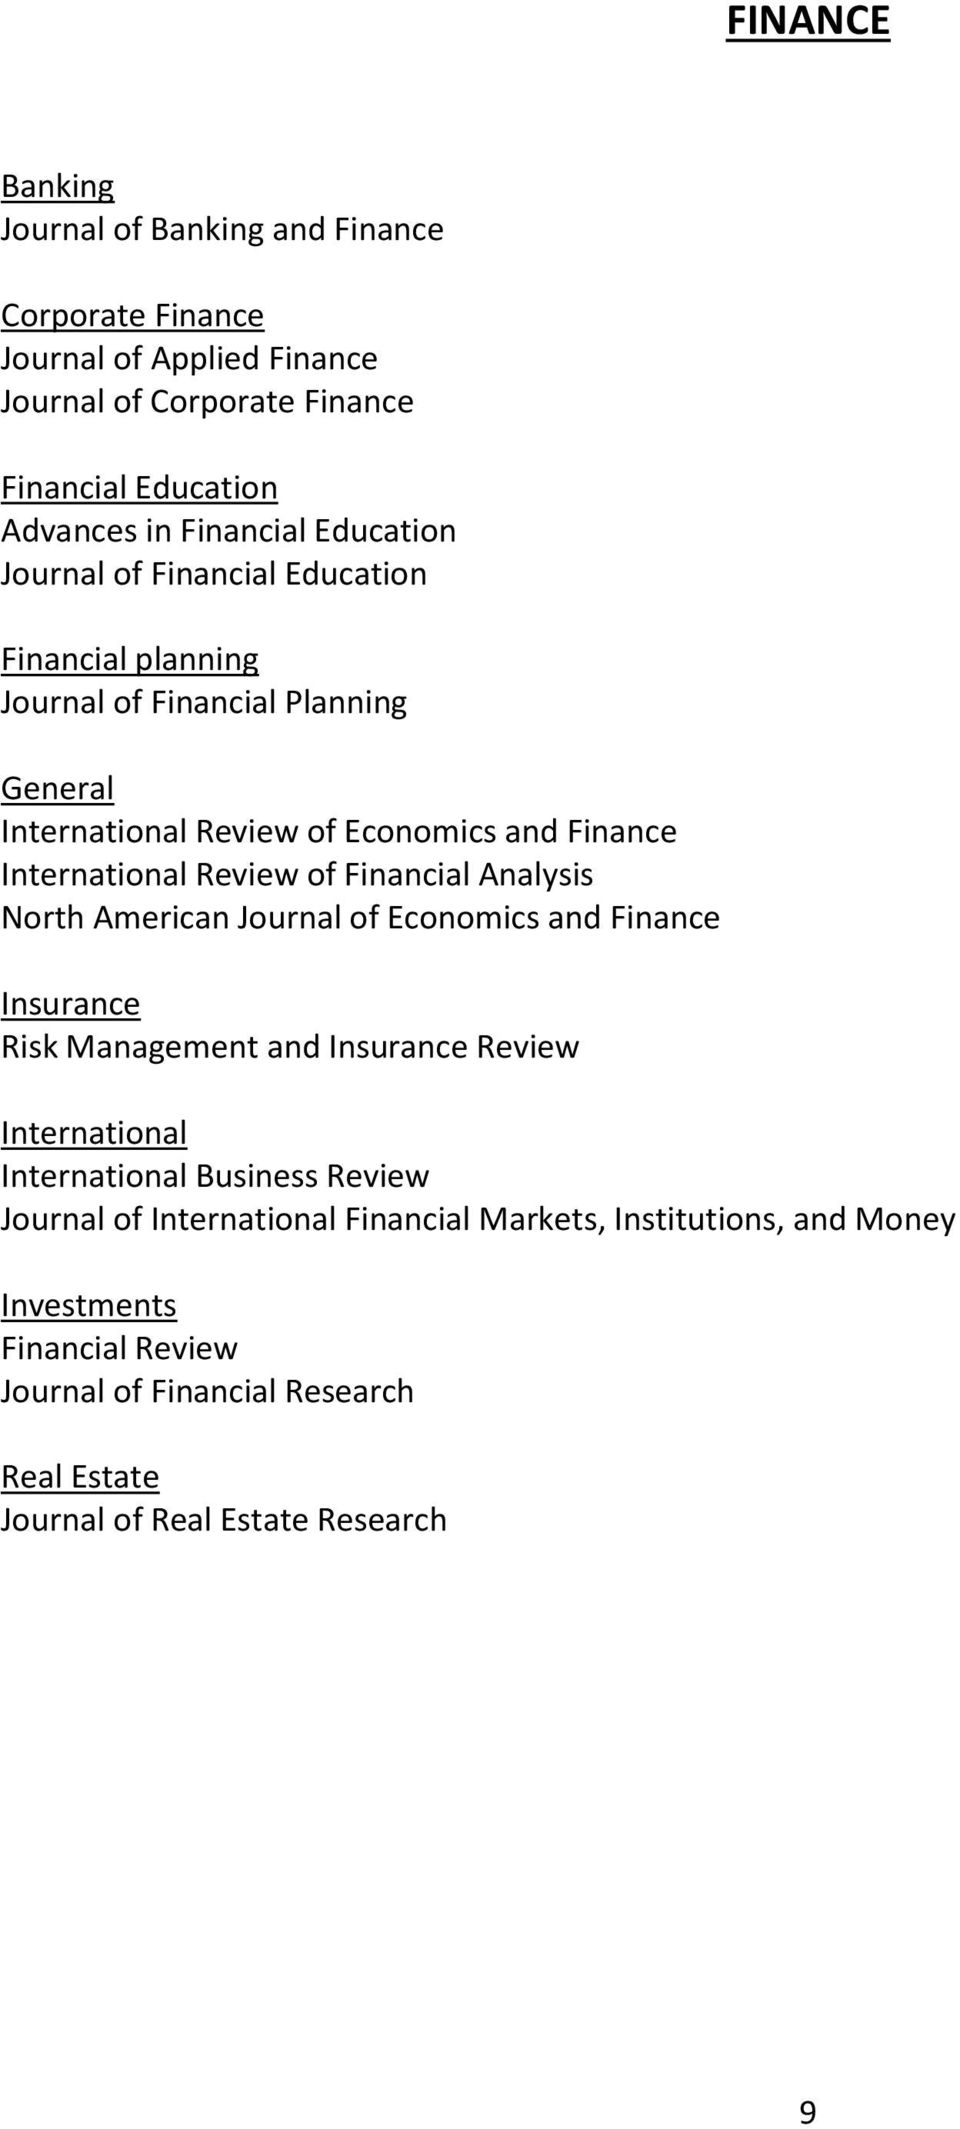 of Financial Analysis North American Journal of Economics and Finance Insurance Risk Management and Insurance Review International International Business Review